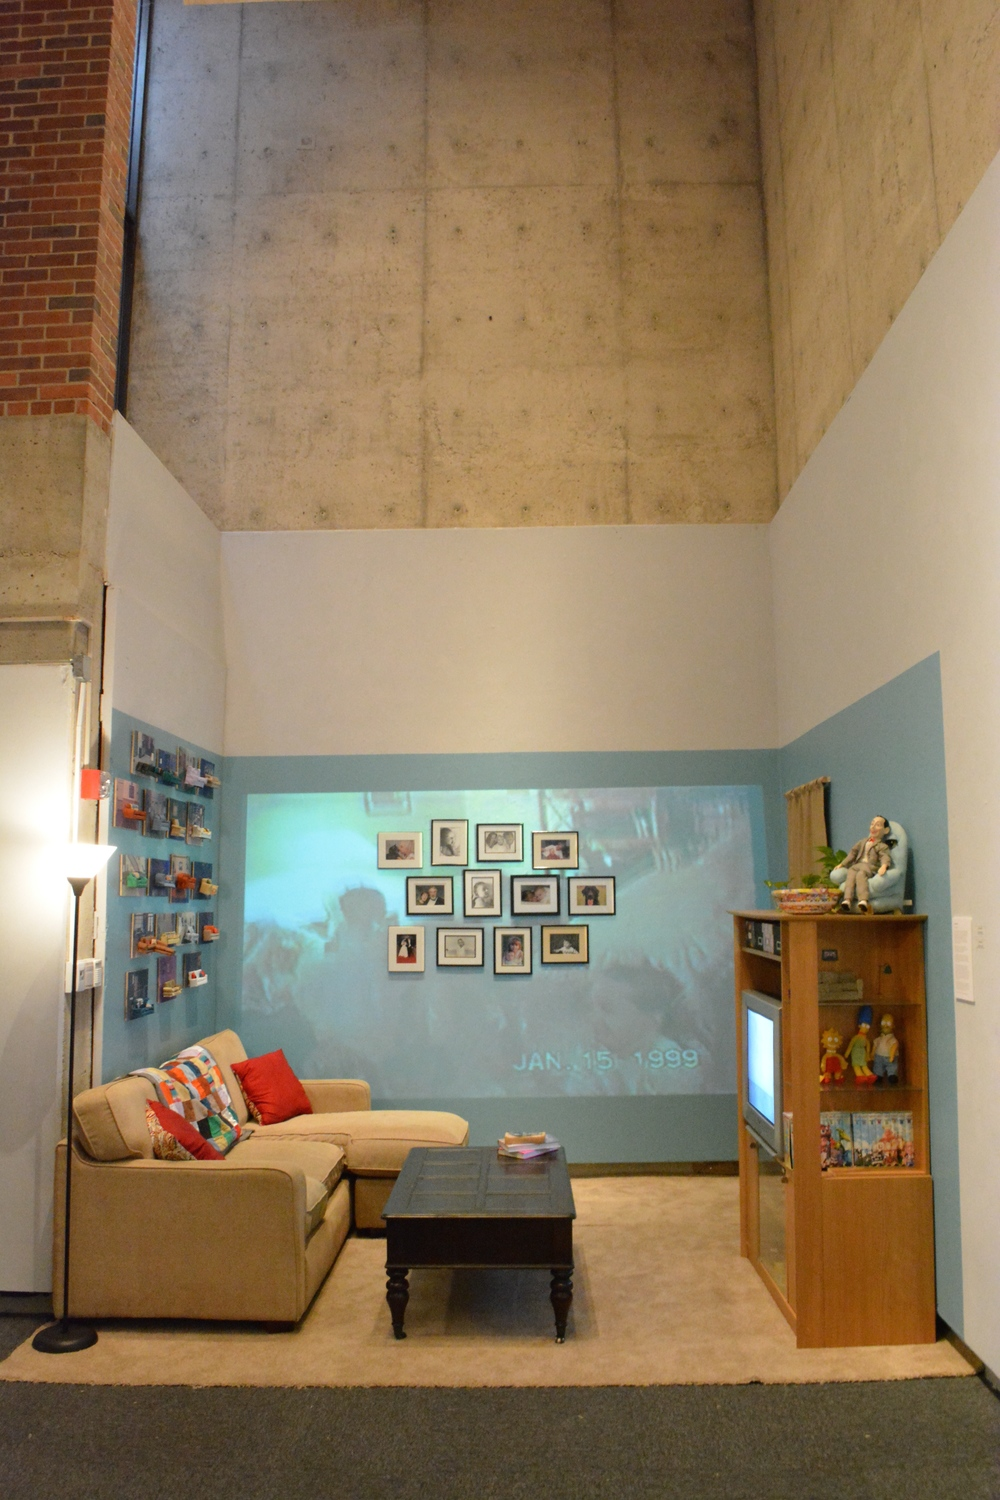 Life & Living Room , Cassidy Routh, Video, Installation, Screen print and soft sculpture, 2015  BFA Thesis Work Spring 2015, Florida State University Museum of Fine Arts